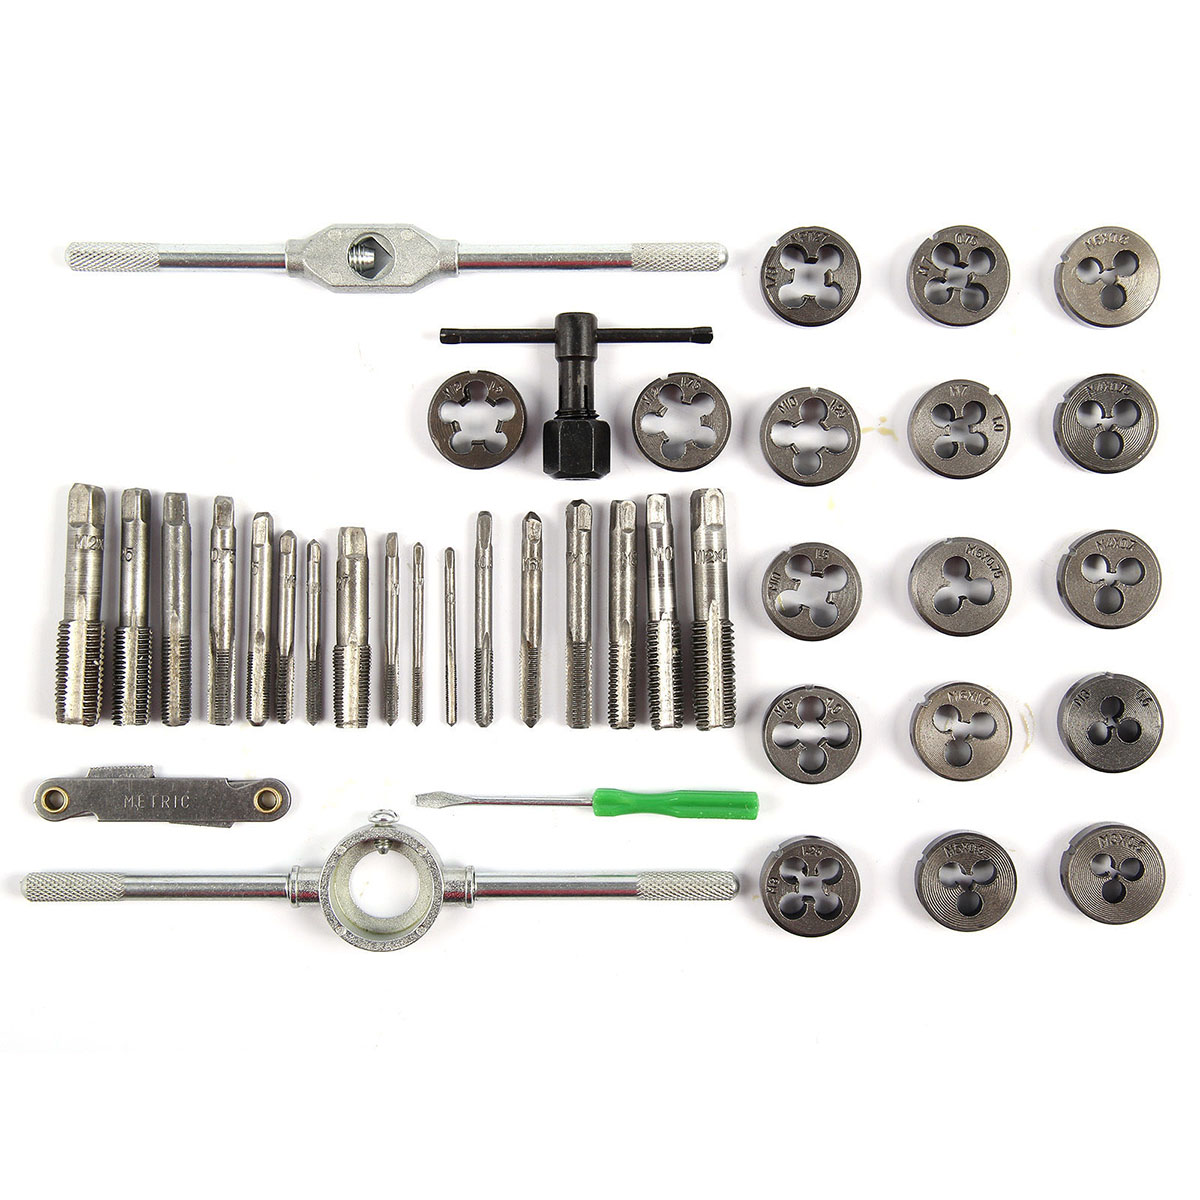 Image 5 - 40pcs Metric Alloy Steel Tap & Die Set M3 M4 M5 M6 M8 M10 M12 Screw Thread screw Plugs Taps with Wrench Broaching Hand Tools Set-in Tap & Die from Tools